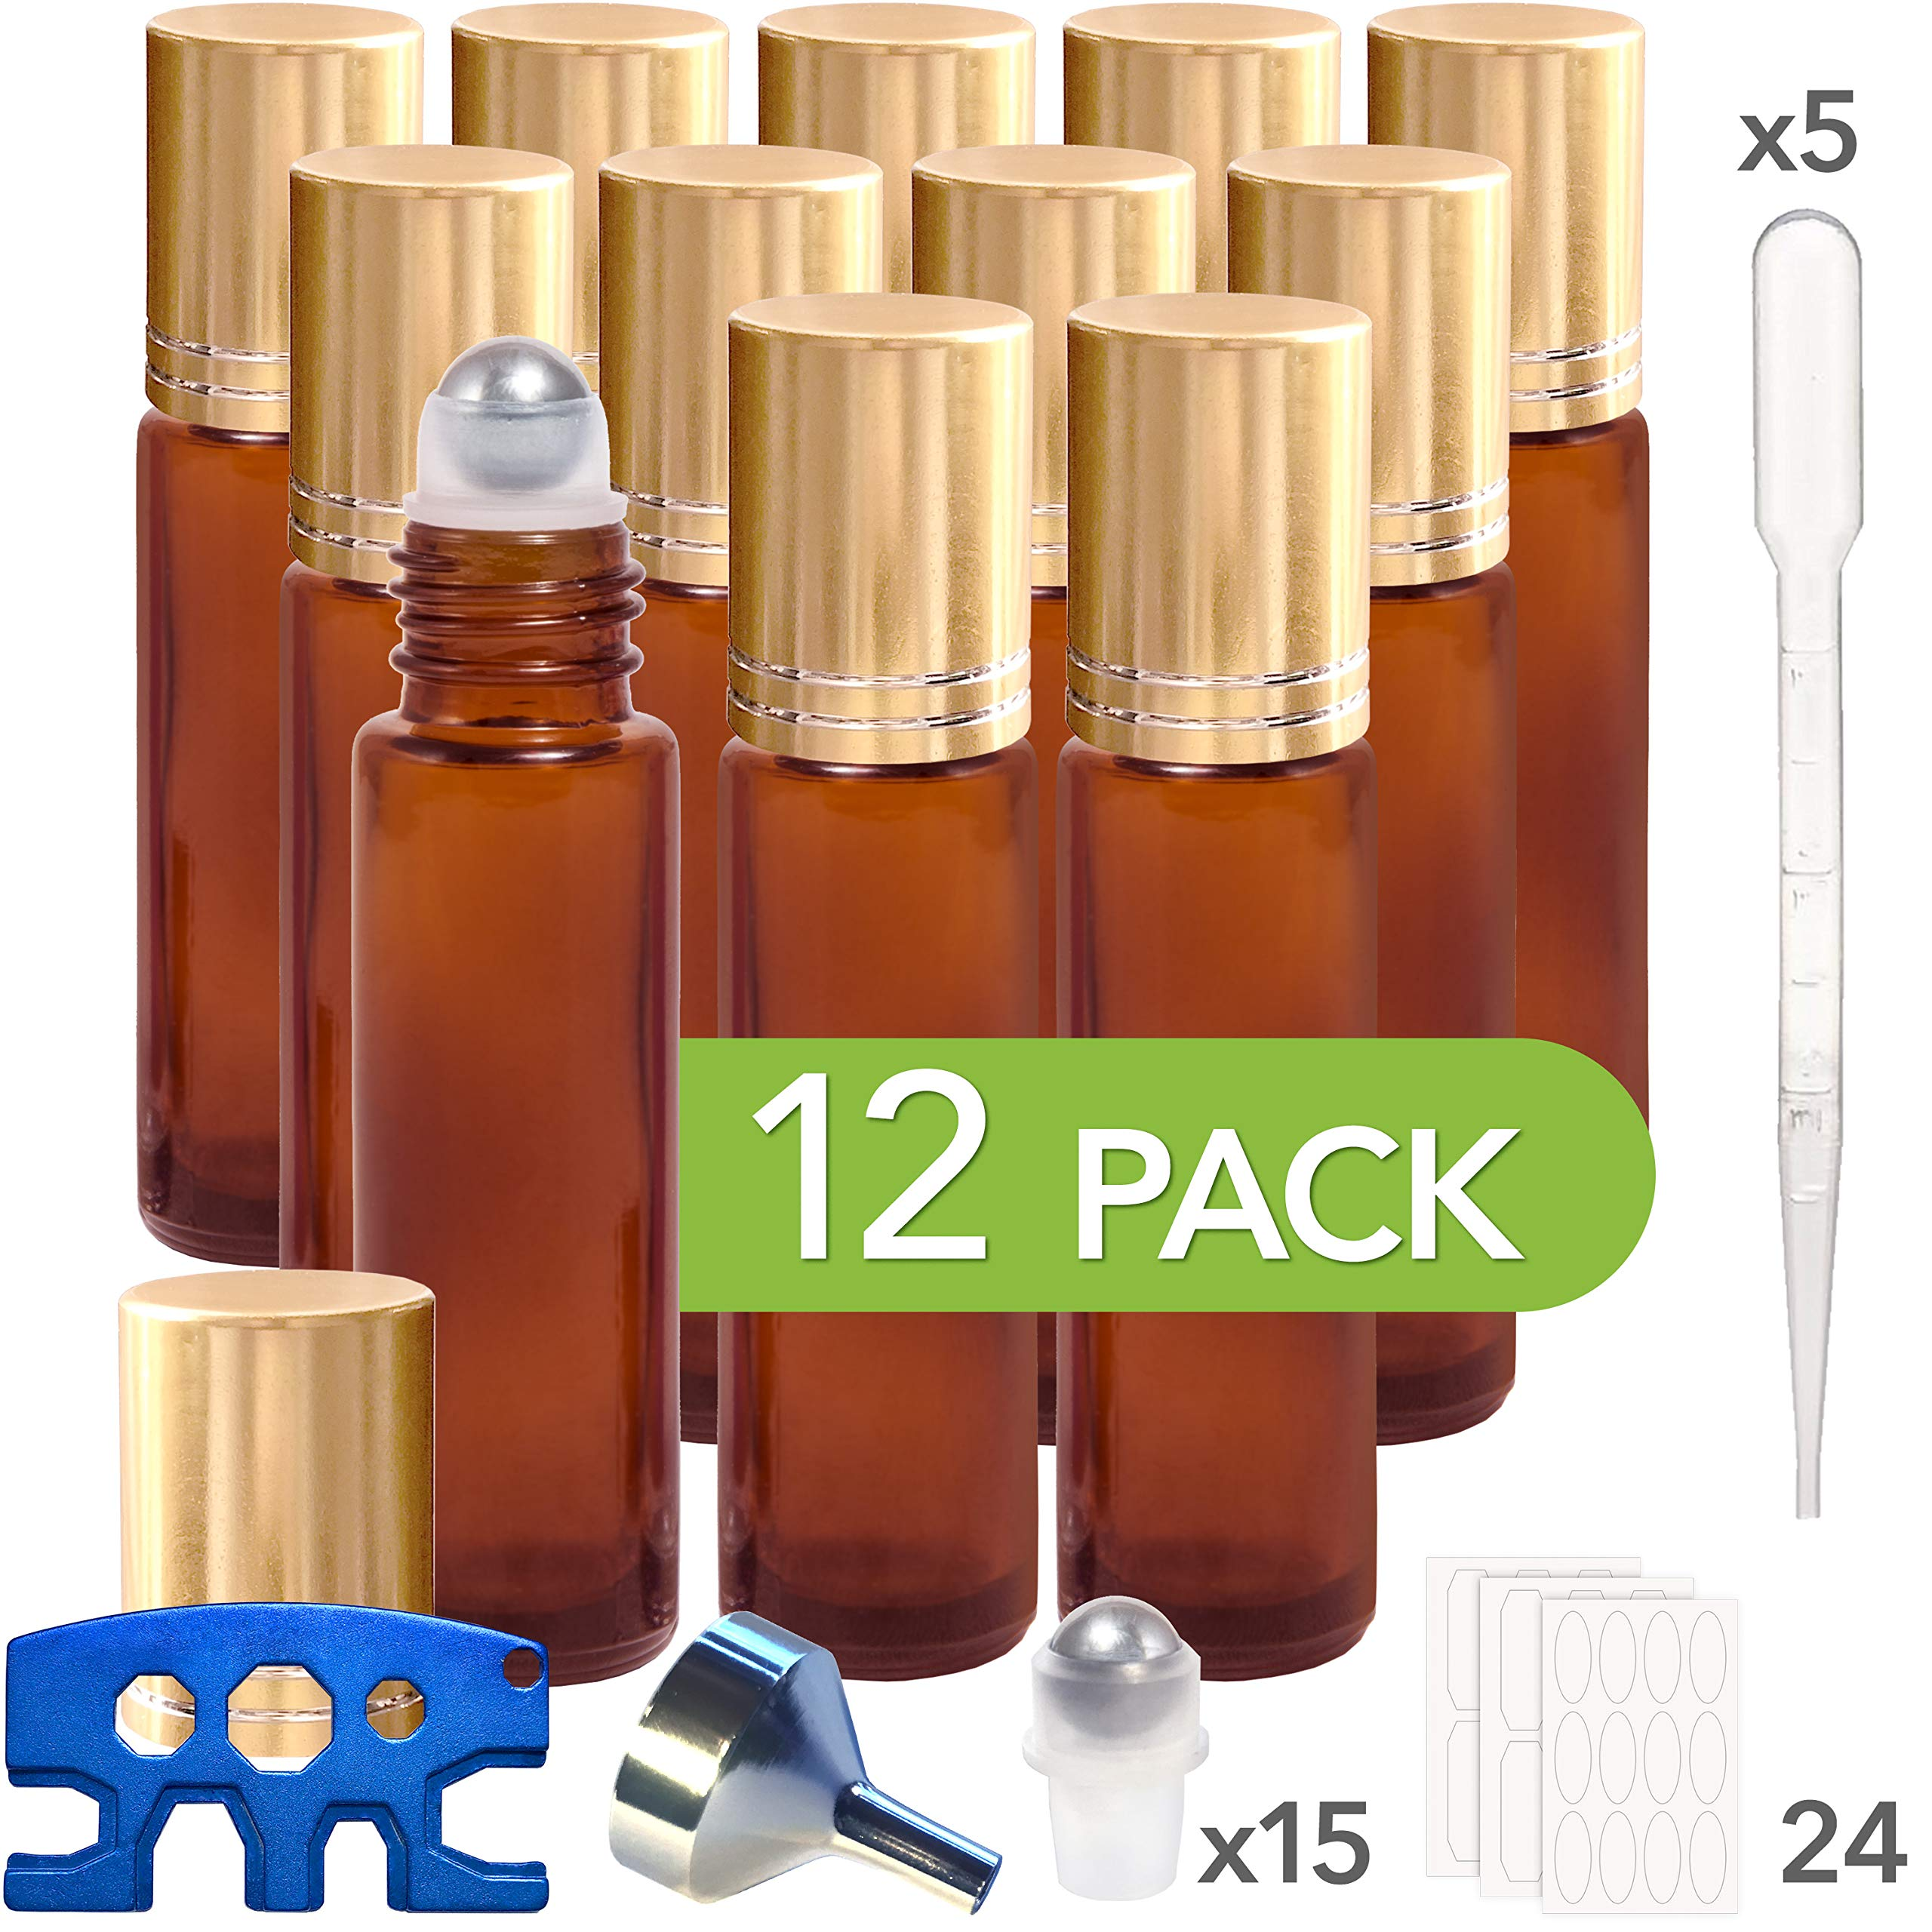 Pure Acres Farm, 12, Amber, 10 ml Glass Roll-on Bottles with Stainless Steel Roller Balls. 3 ml Droppers included by Pure Acres Farm